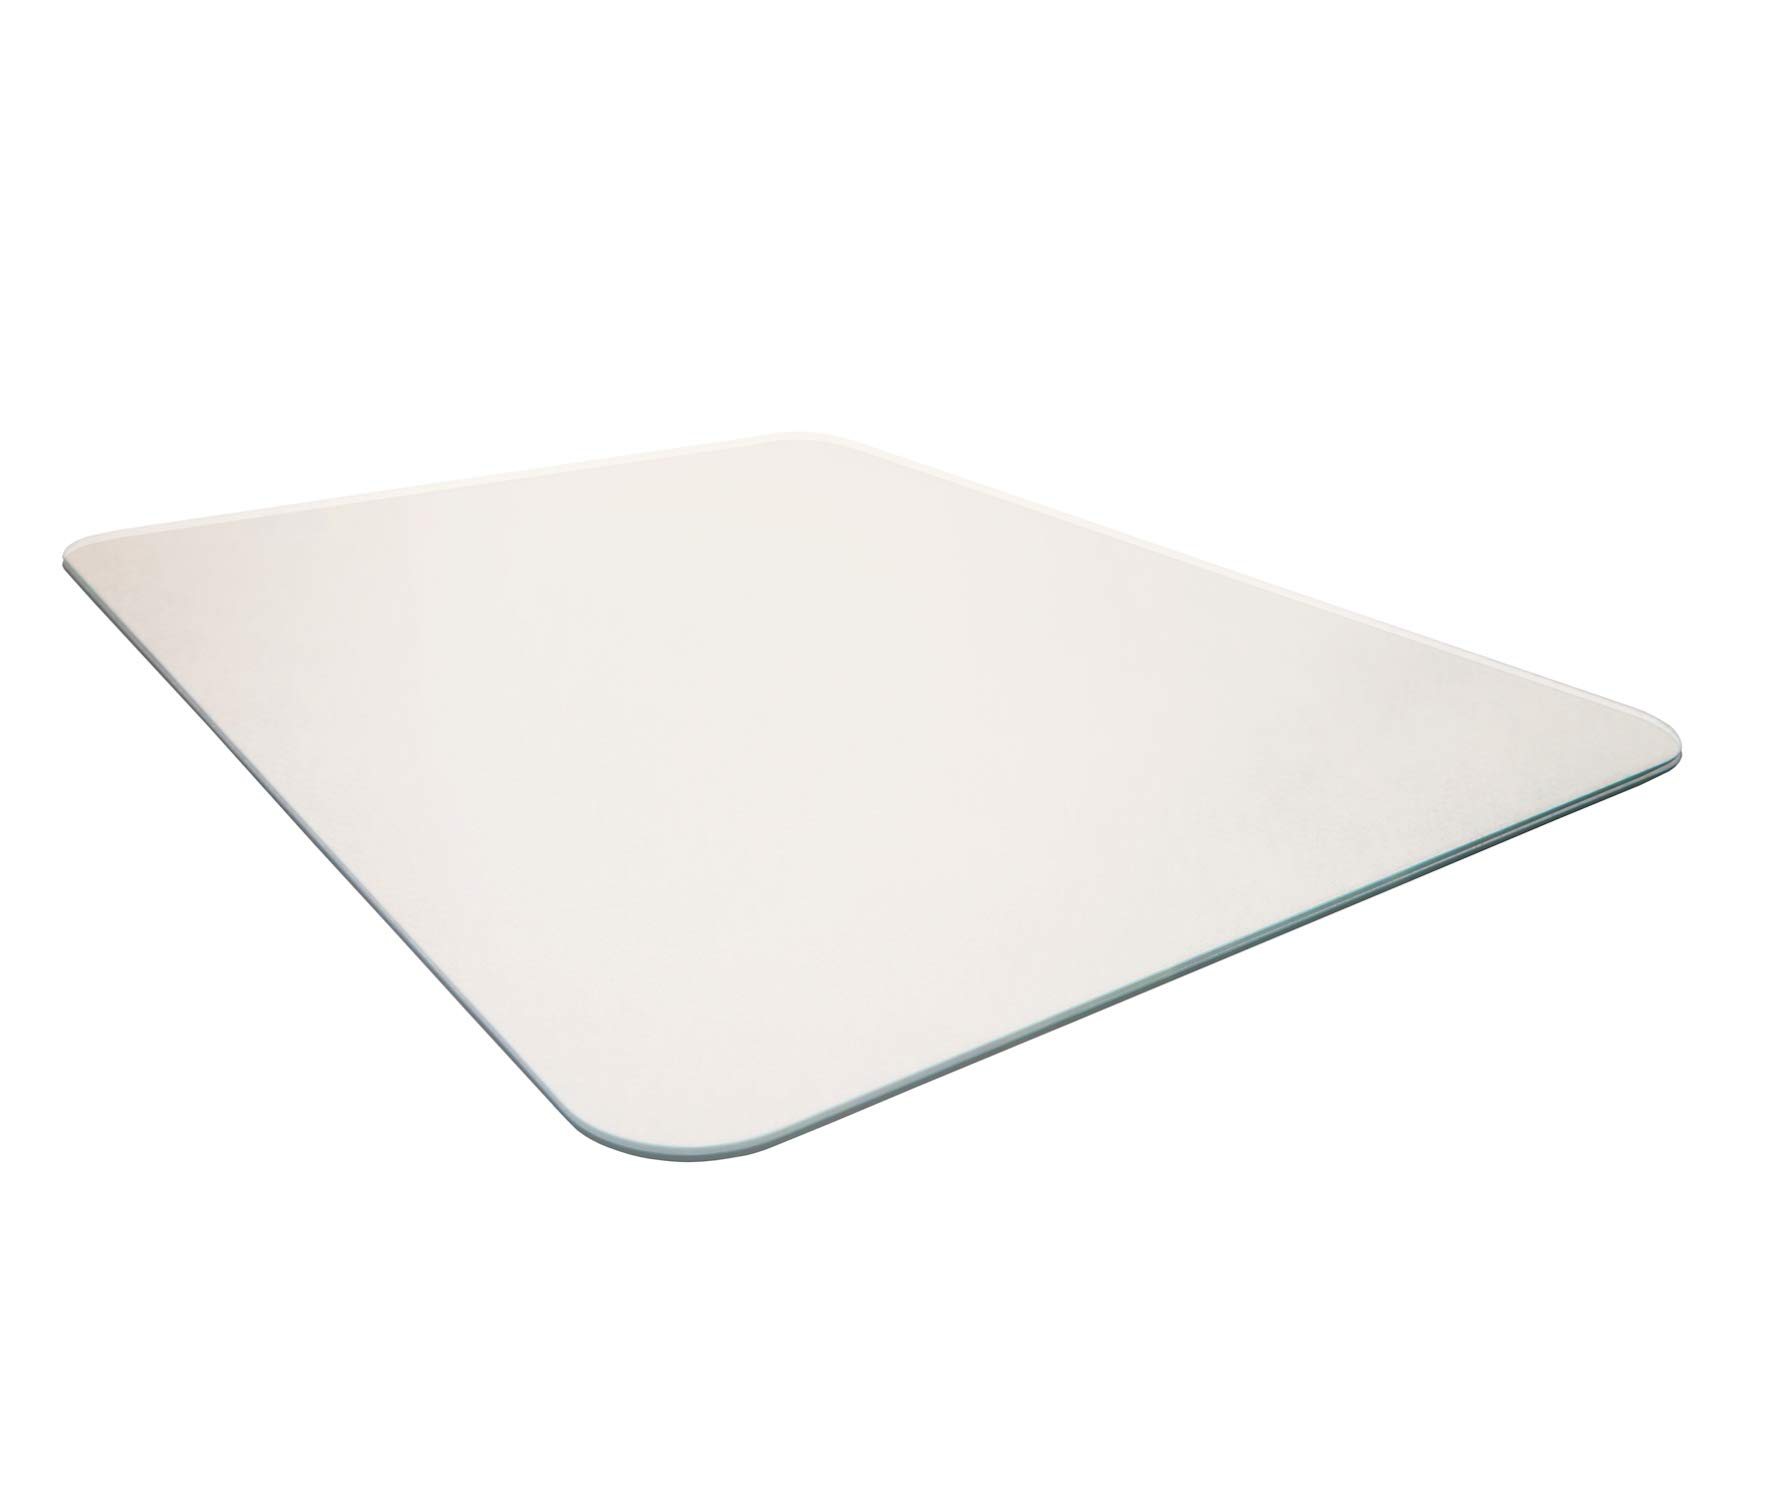 Cleartex Glaciermat, Reinforced Glass Executive Chair Mat for Hard Floors/Carpets, 36'' x 48'' (FC123648EG)